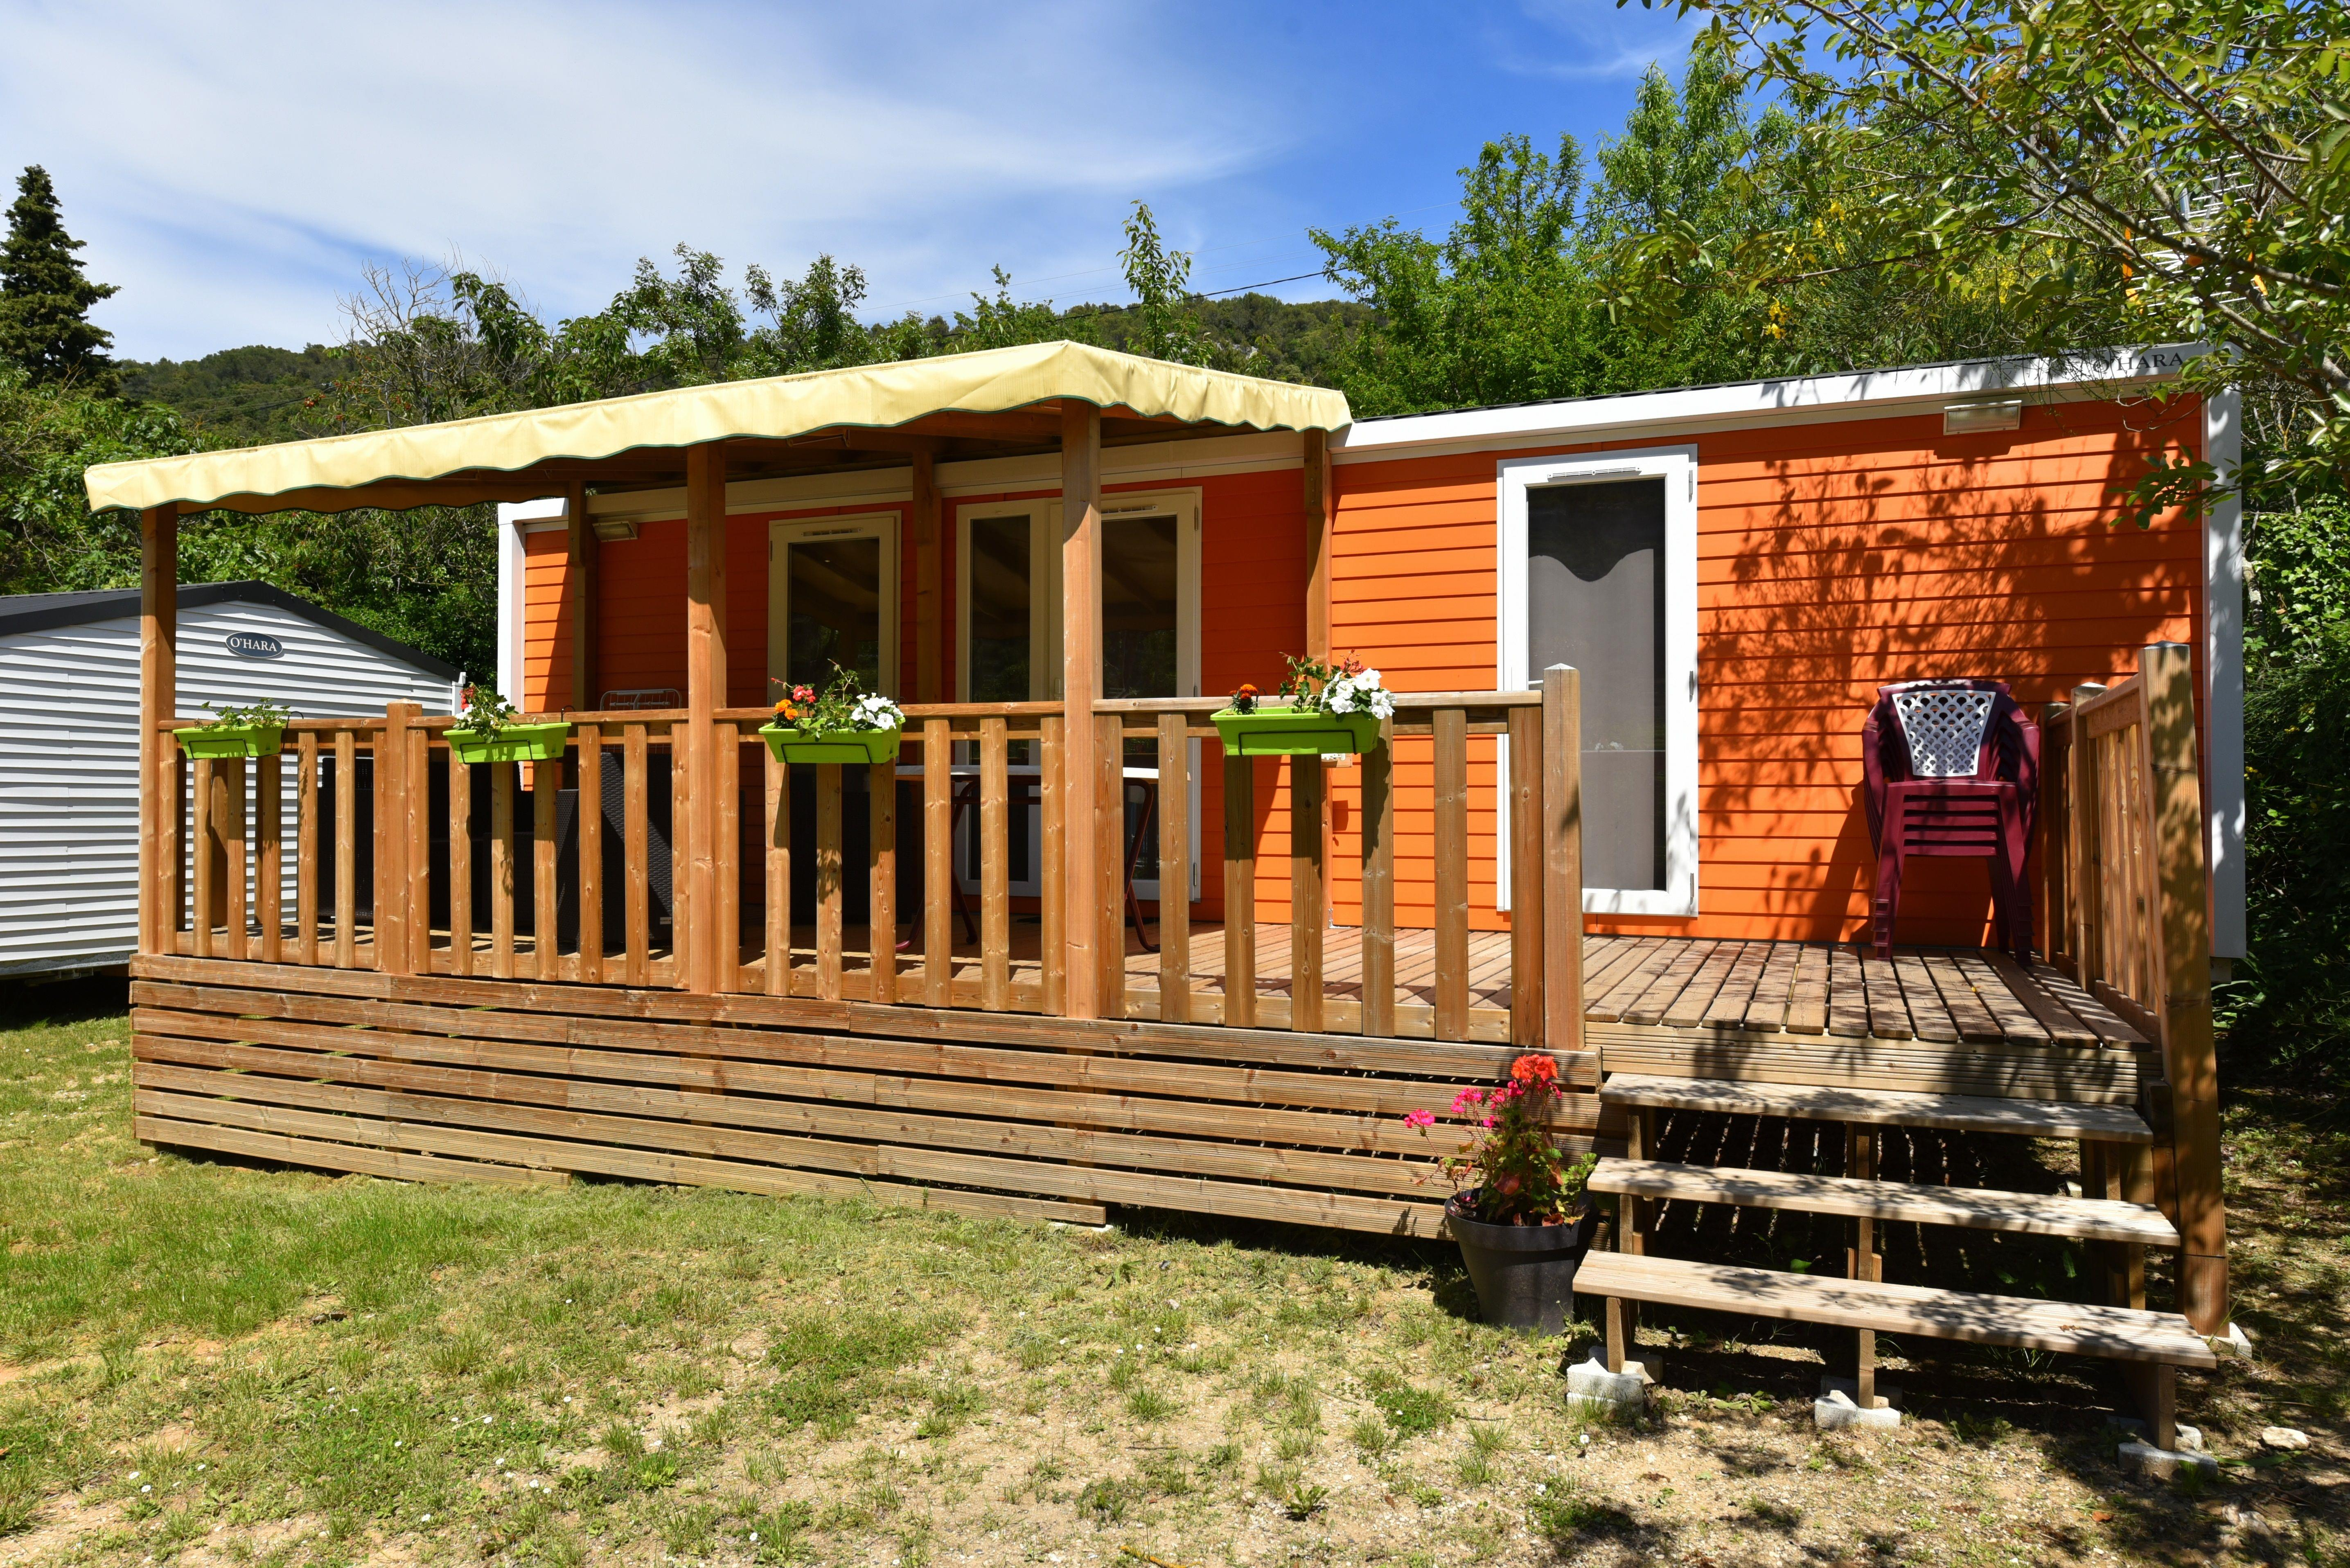 Accommodation - Mobile Home Premium With Air Conditioned 2 Bedrooms, 2 Bathrooms, Tv, Dishwasher Saturday Till Saturday In High Season - Camping des Gorges